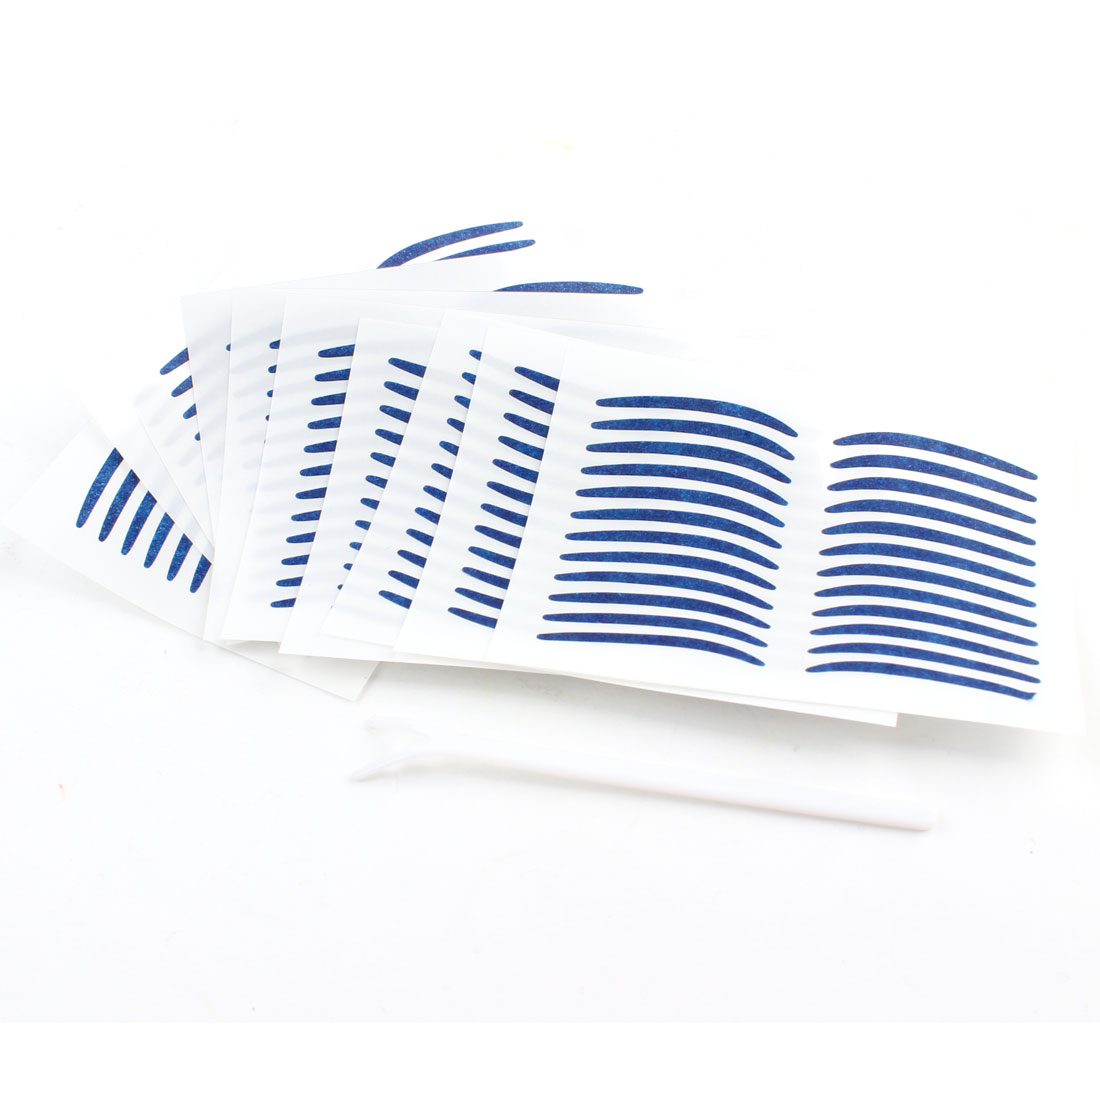 120 Pairs Cosmetic Tool Double Eyelid Maker Adhesive Tapes Stickers Yale Blue